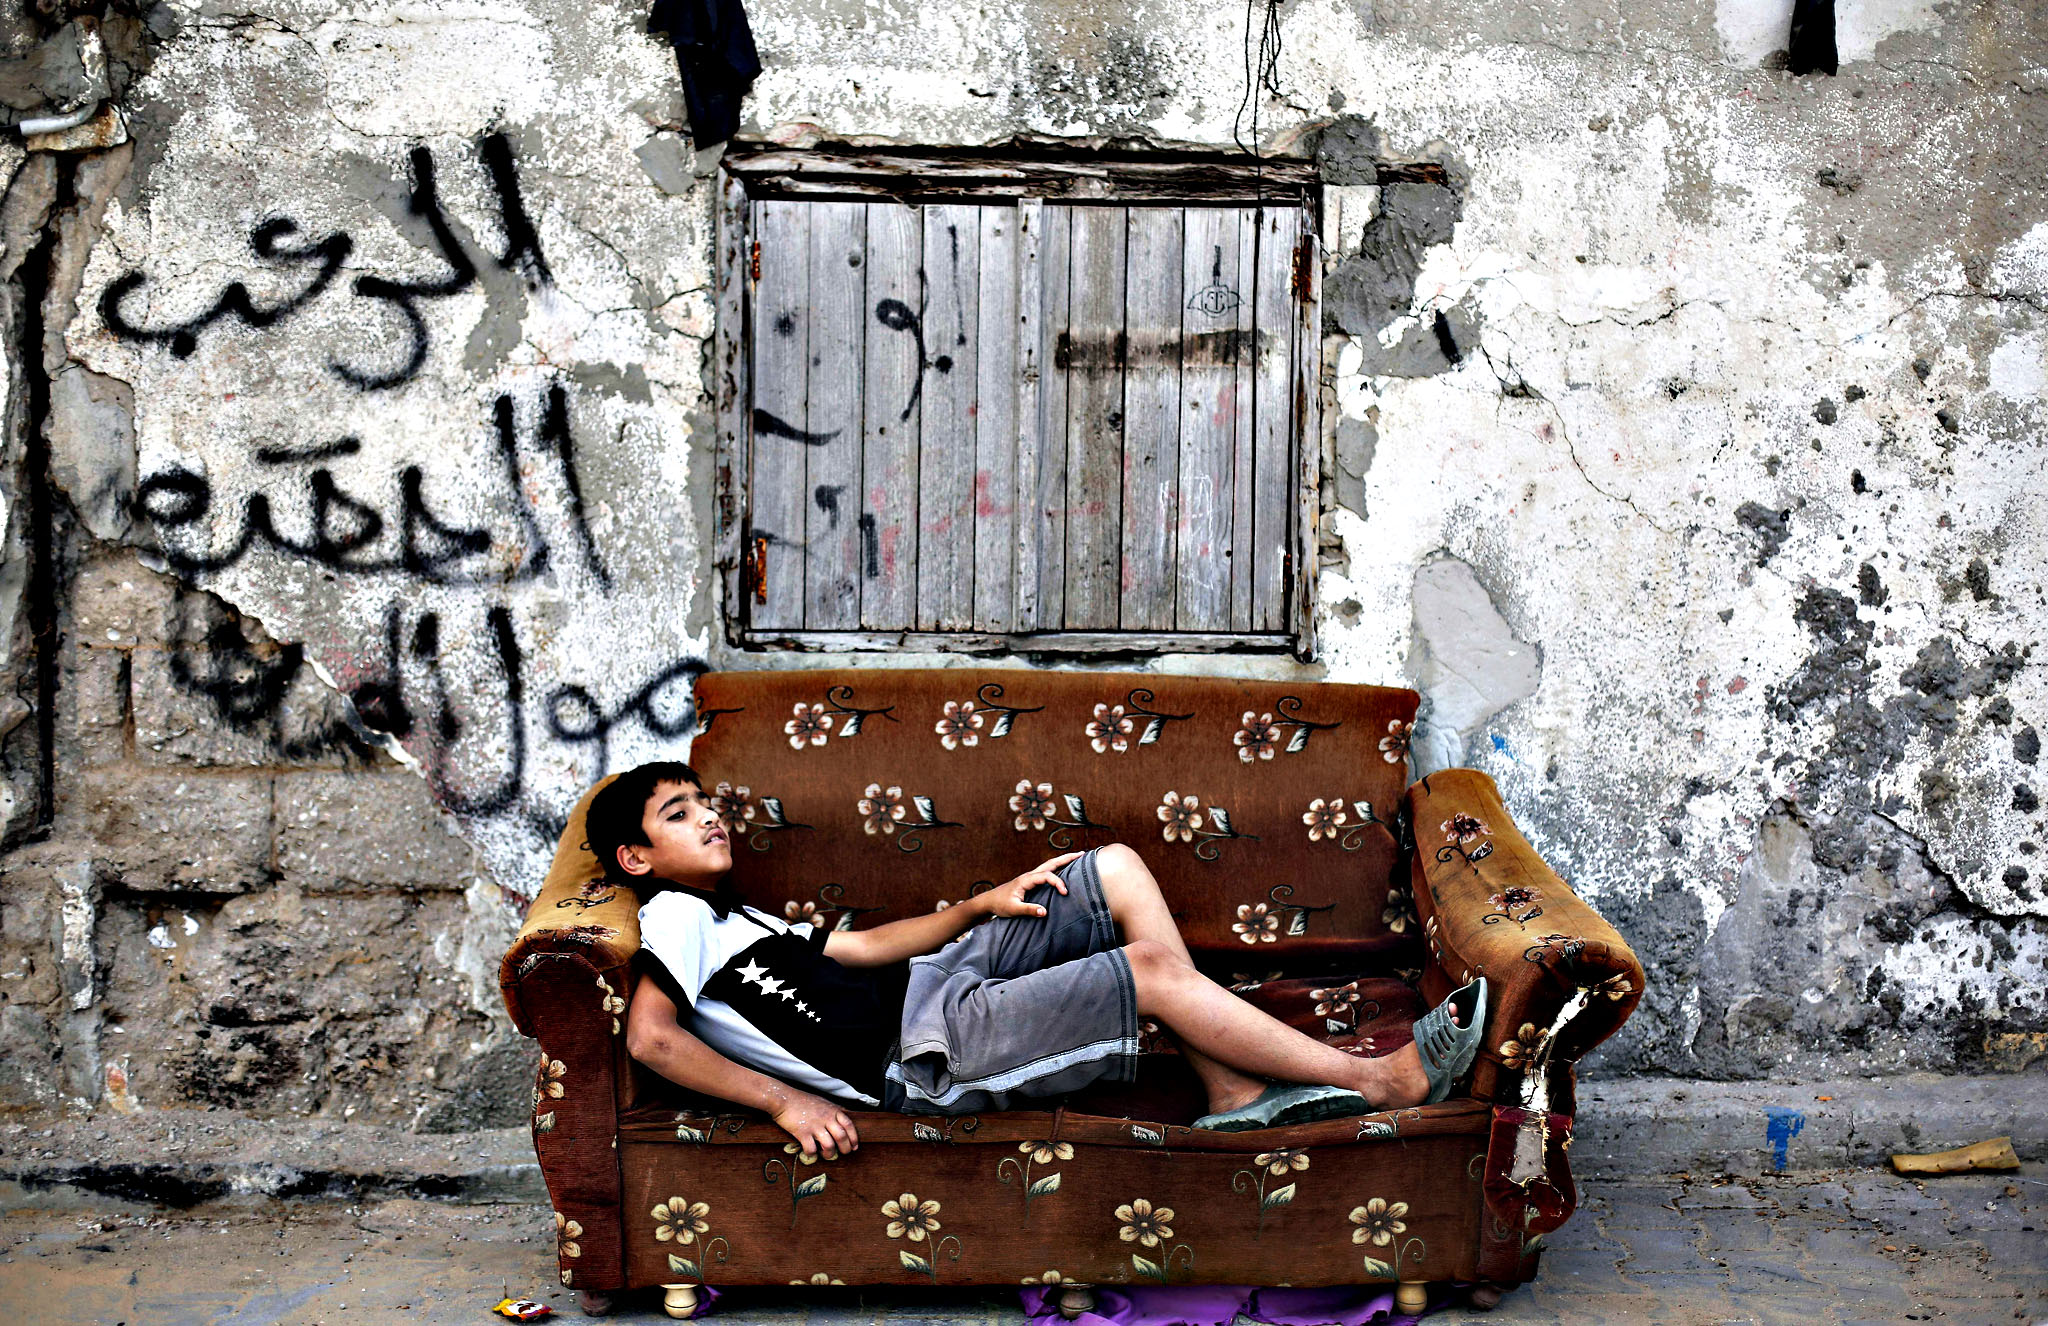 A Palestinian boy rests on an old armcha...A Palestinian boy rests on an old armchair in front of a dilapidated house on May 22, 2015 in Gaza City